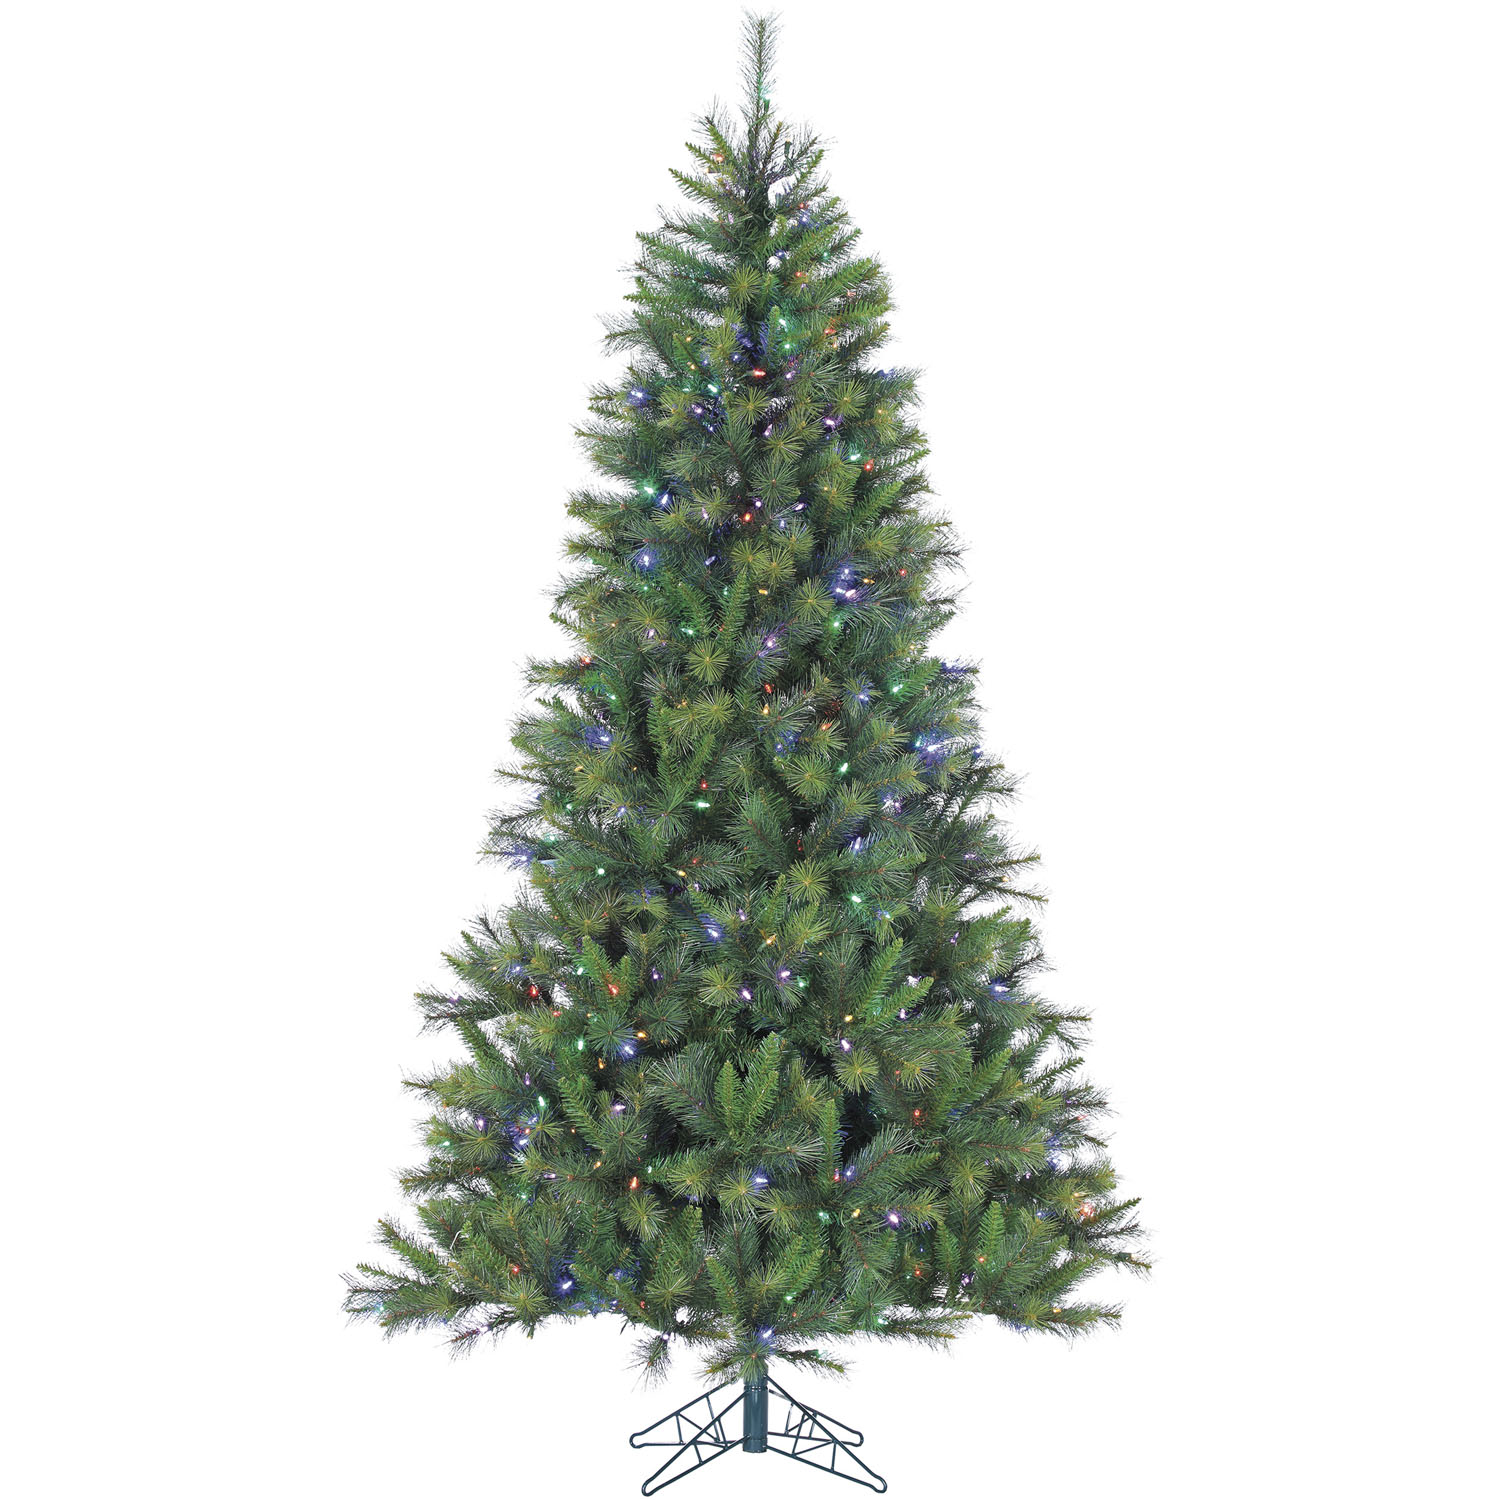 12 Ft. Canyon Pine Christmas Tree with Multi-Color LED String Lighting - FFCM012-6GR